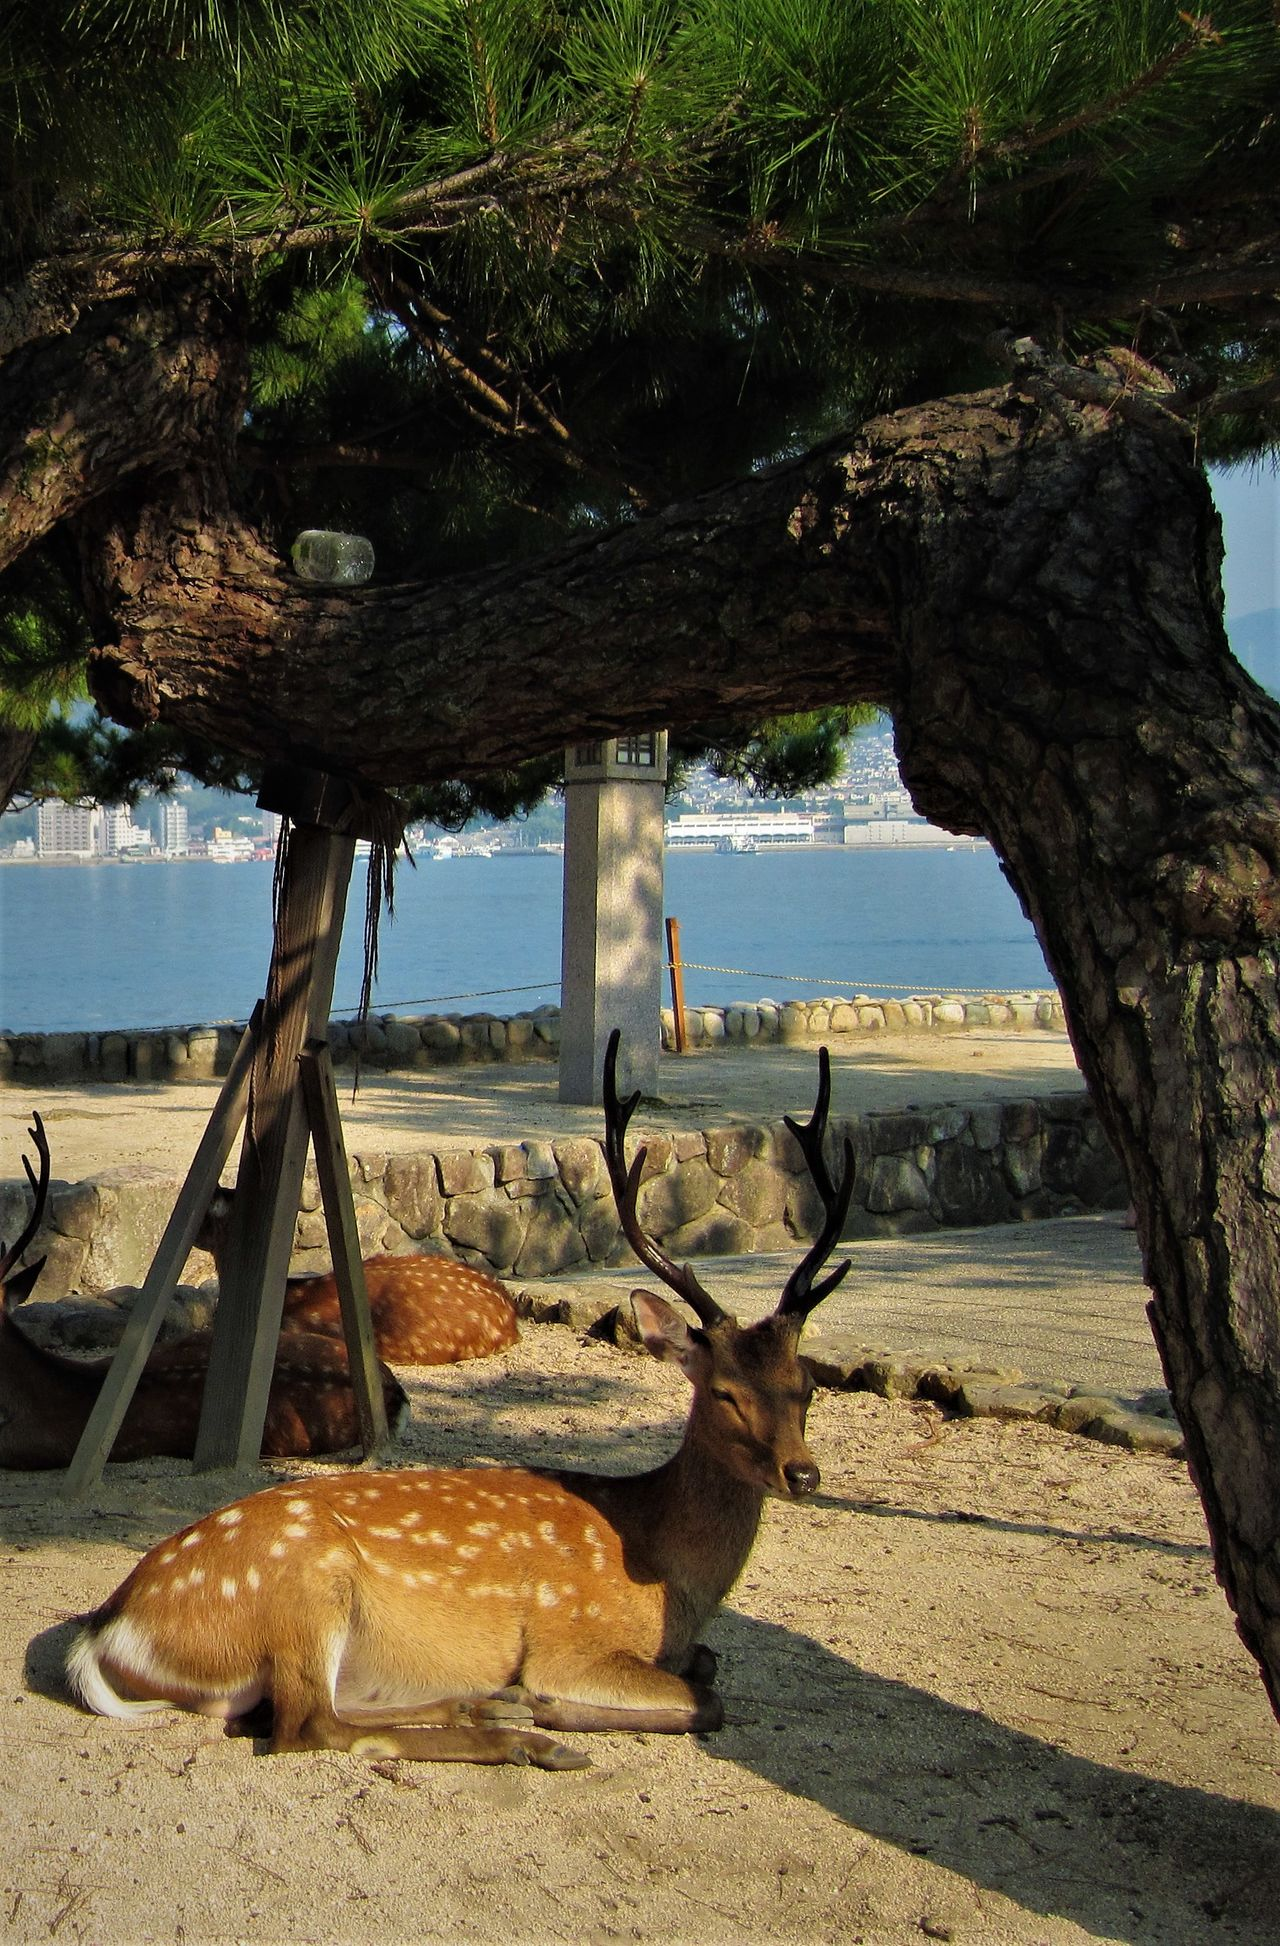 Miyajima Deer Animal Themes Animals In The Wild Antler Beauty In Nature Day Deer In The Shade Japan Japan Photography Japanese  Japanese Style Mammal Miyajima Nature No People Outdoors Resting Resting Place Sea Shade Sleeping Stag Tree Under The Tree Wildlife The Great Outdoors - 2017 EyeEm Awards